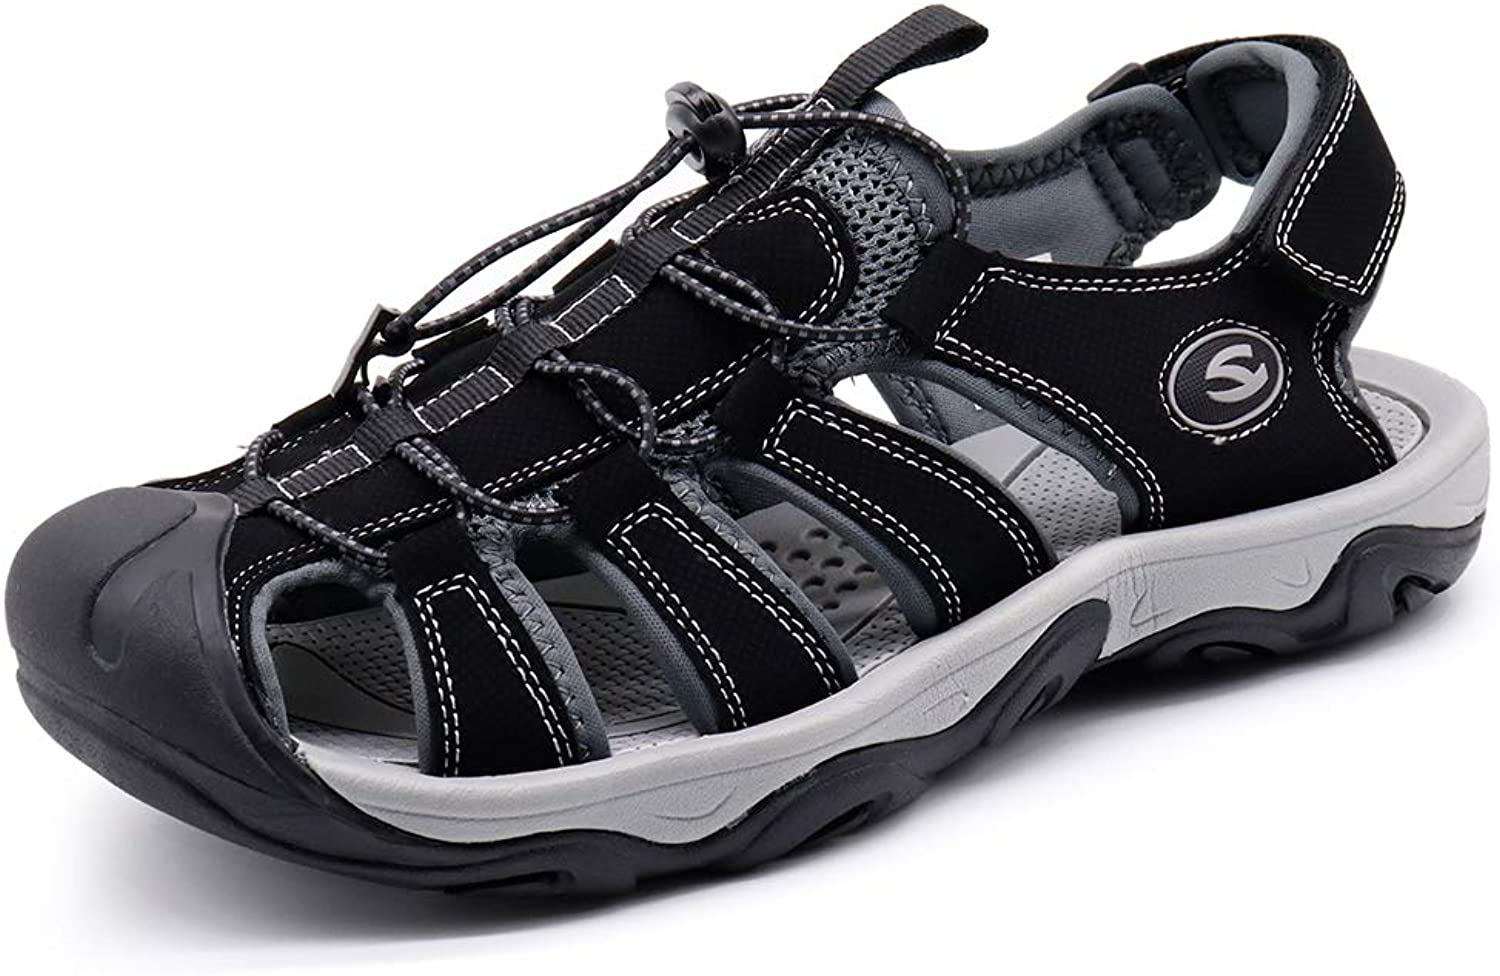 Hiking Sandals for Men Outdoor Athletic Climbing Summer Beach Fisherman Traveling (H7867hei43)